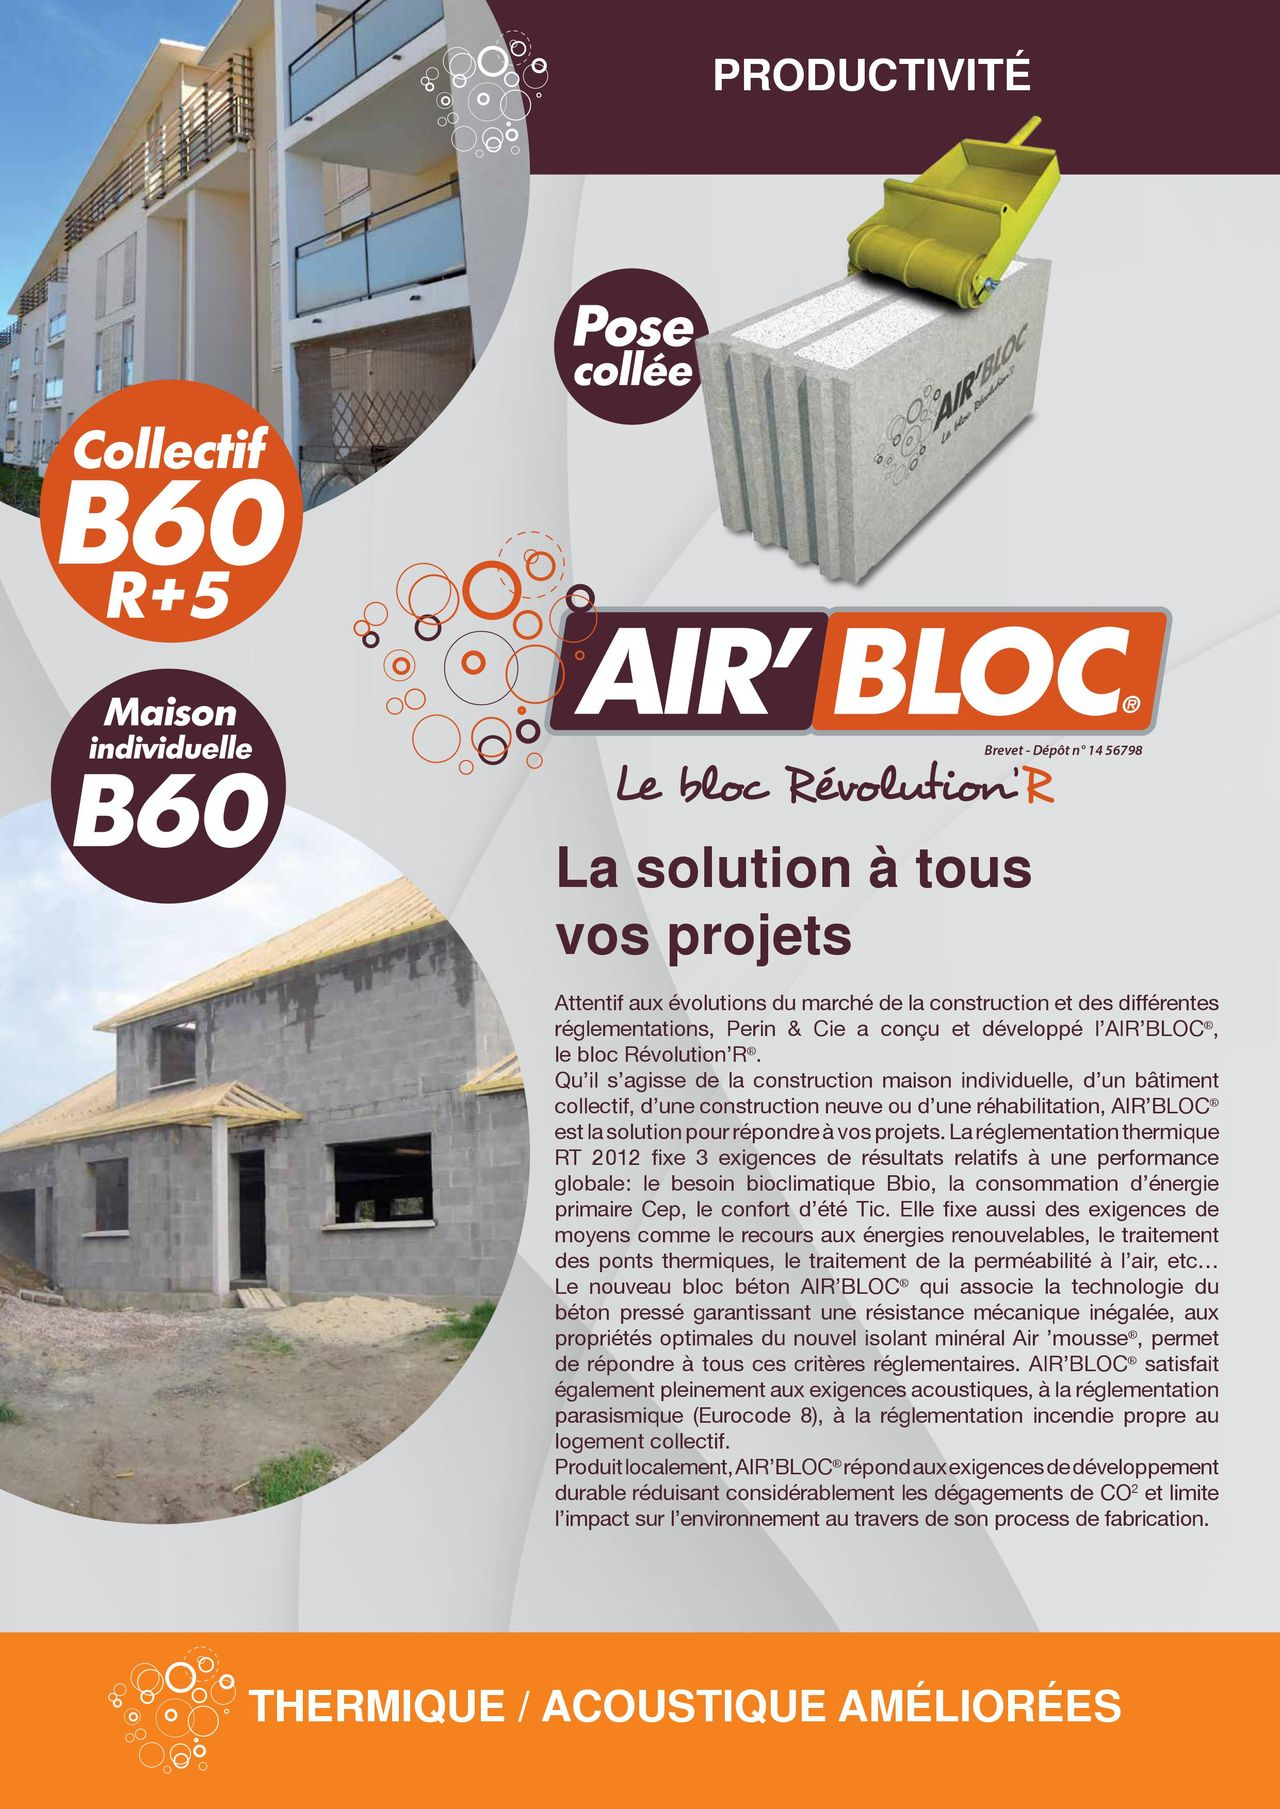 Air'bloc la solution à vos projets